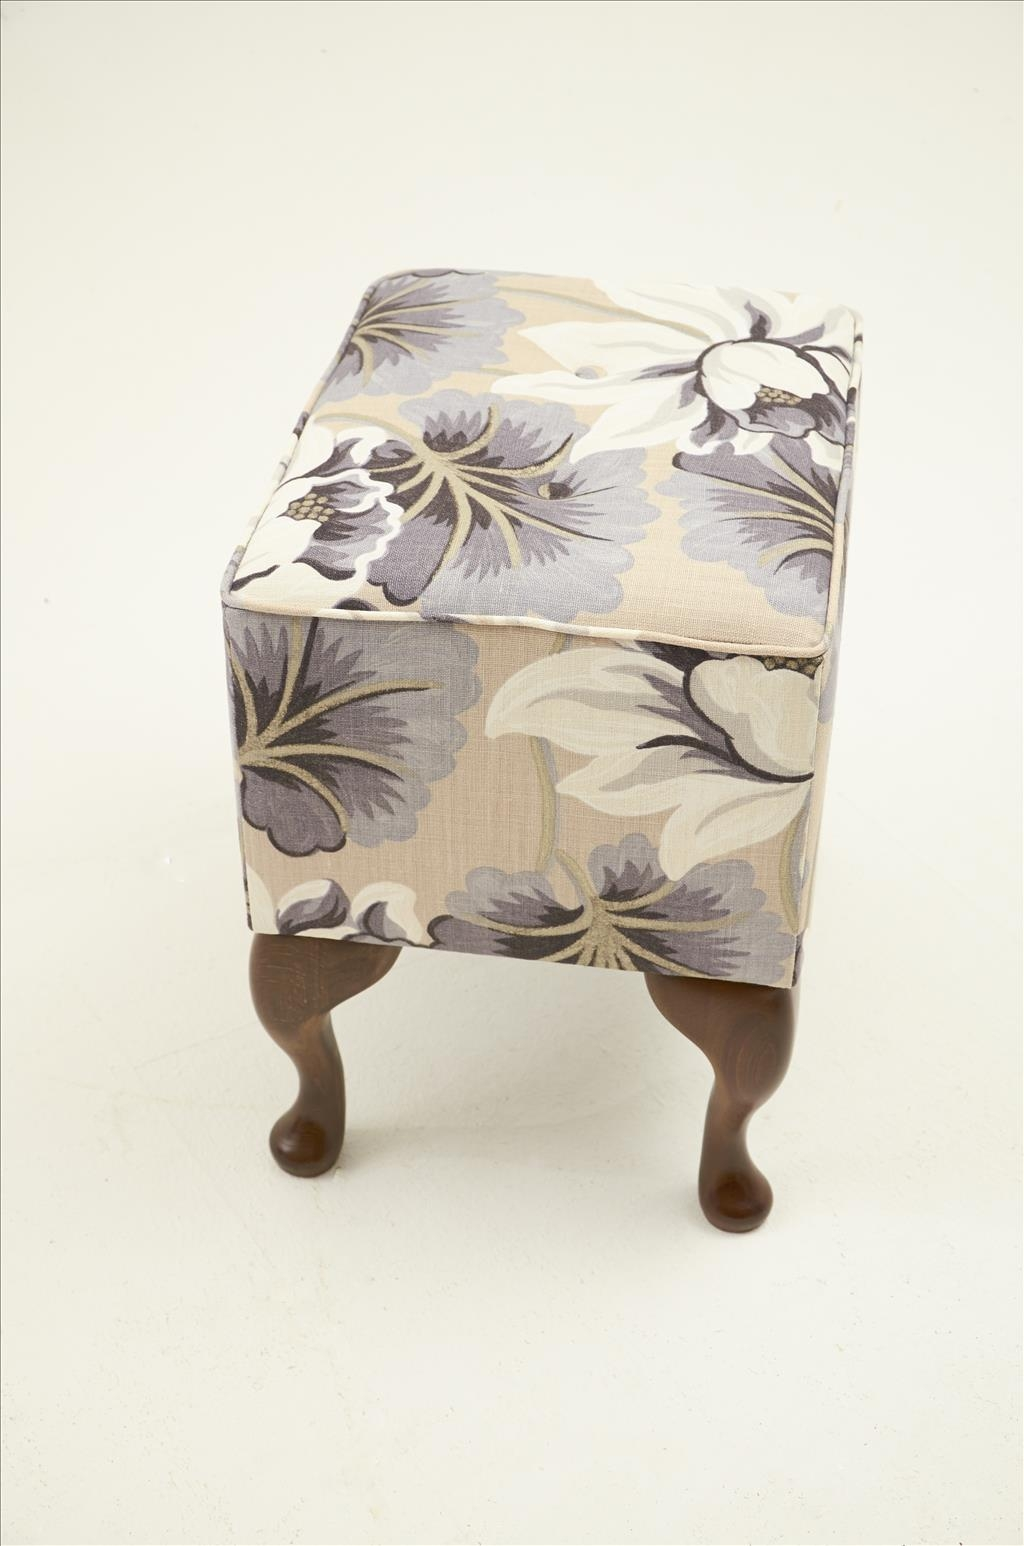 Furniture Up Your Legs Onfabric Footstools Small Padded Footstool Intended For Small Footstools And Pouffes (Image 5 of 15)